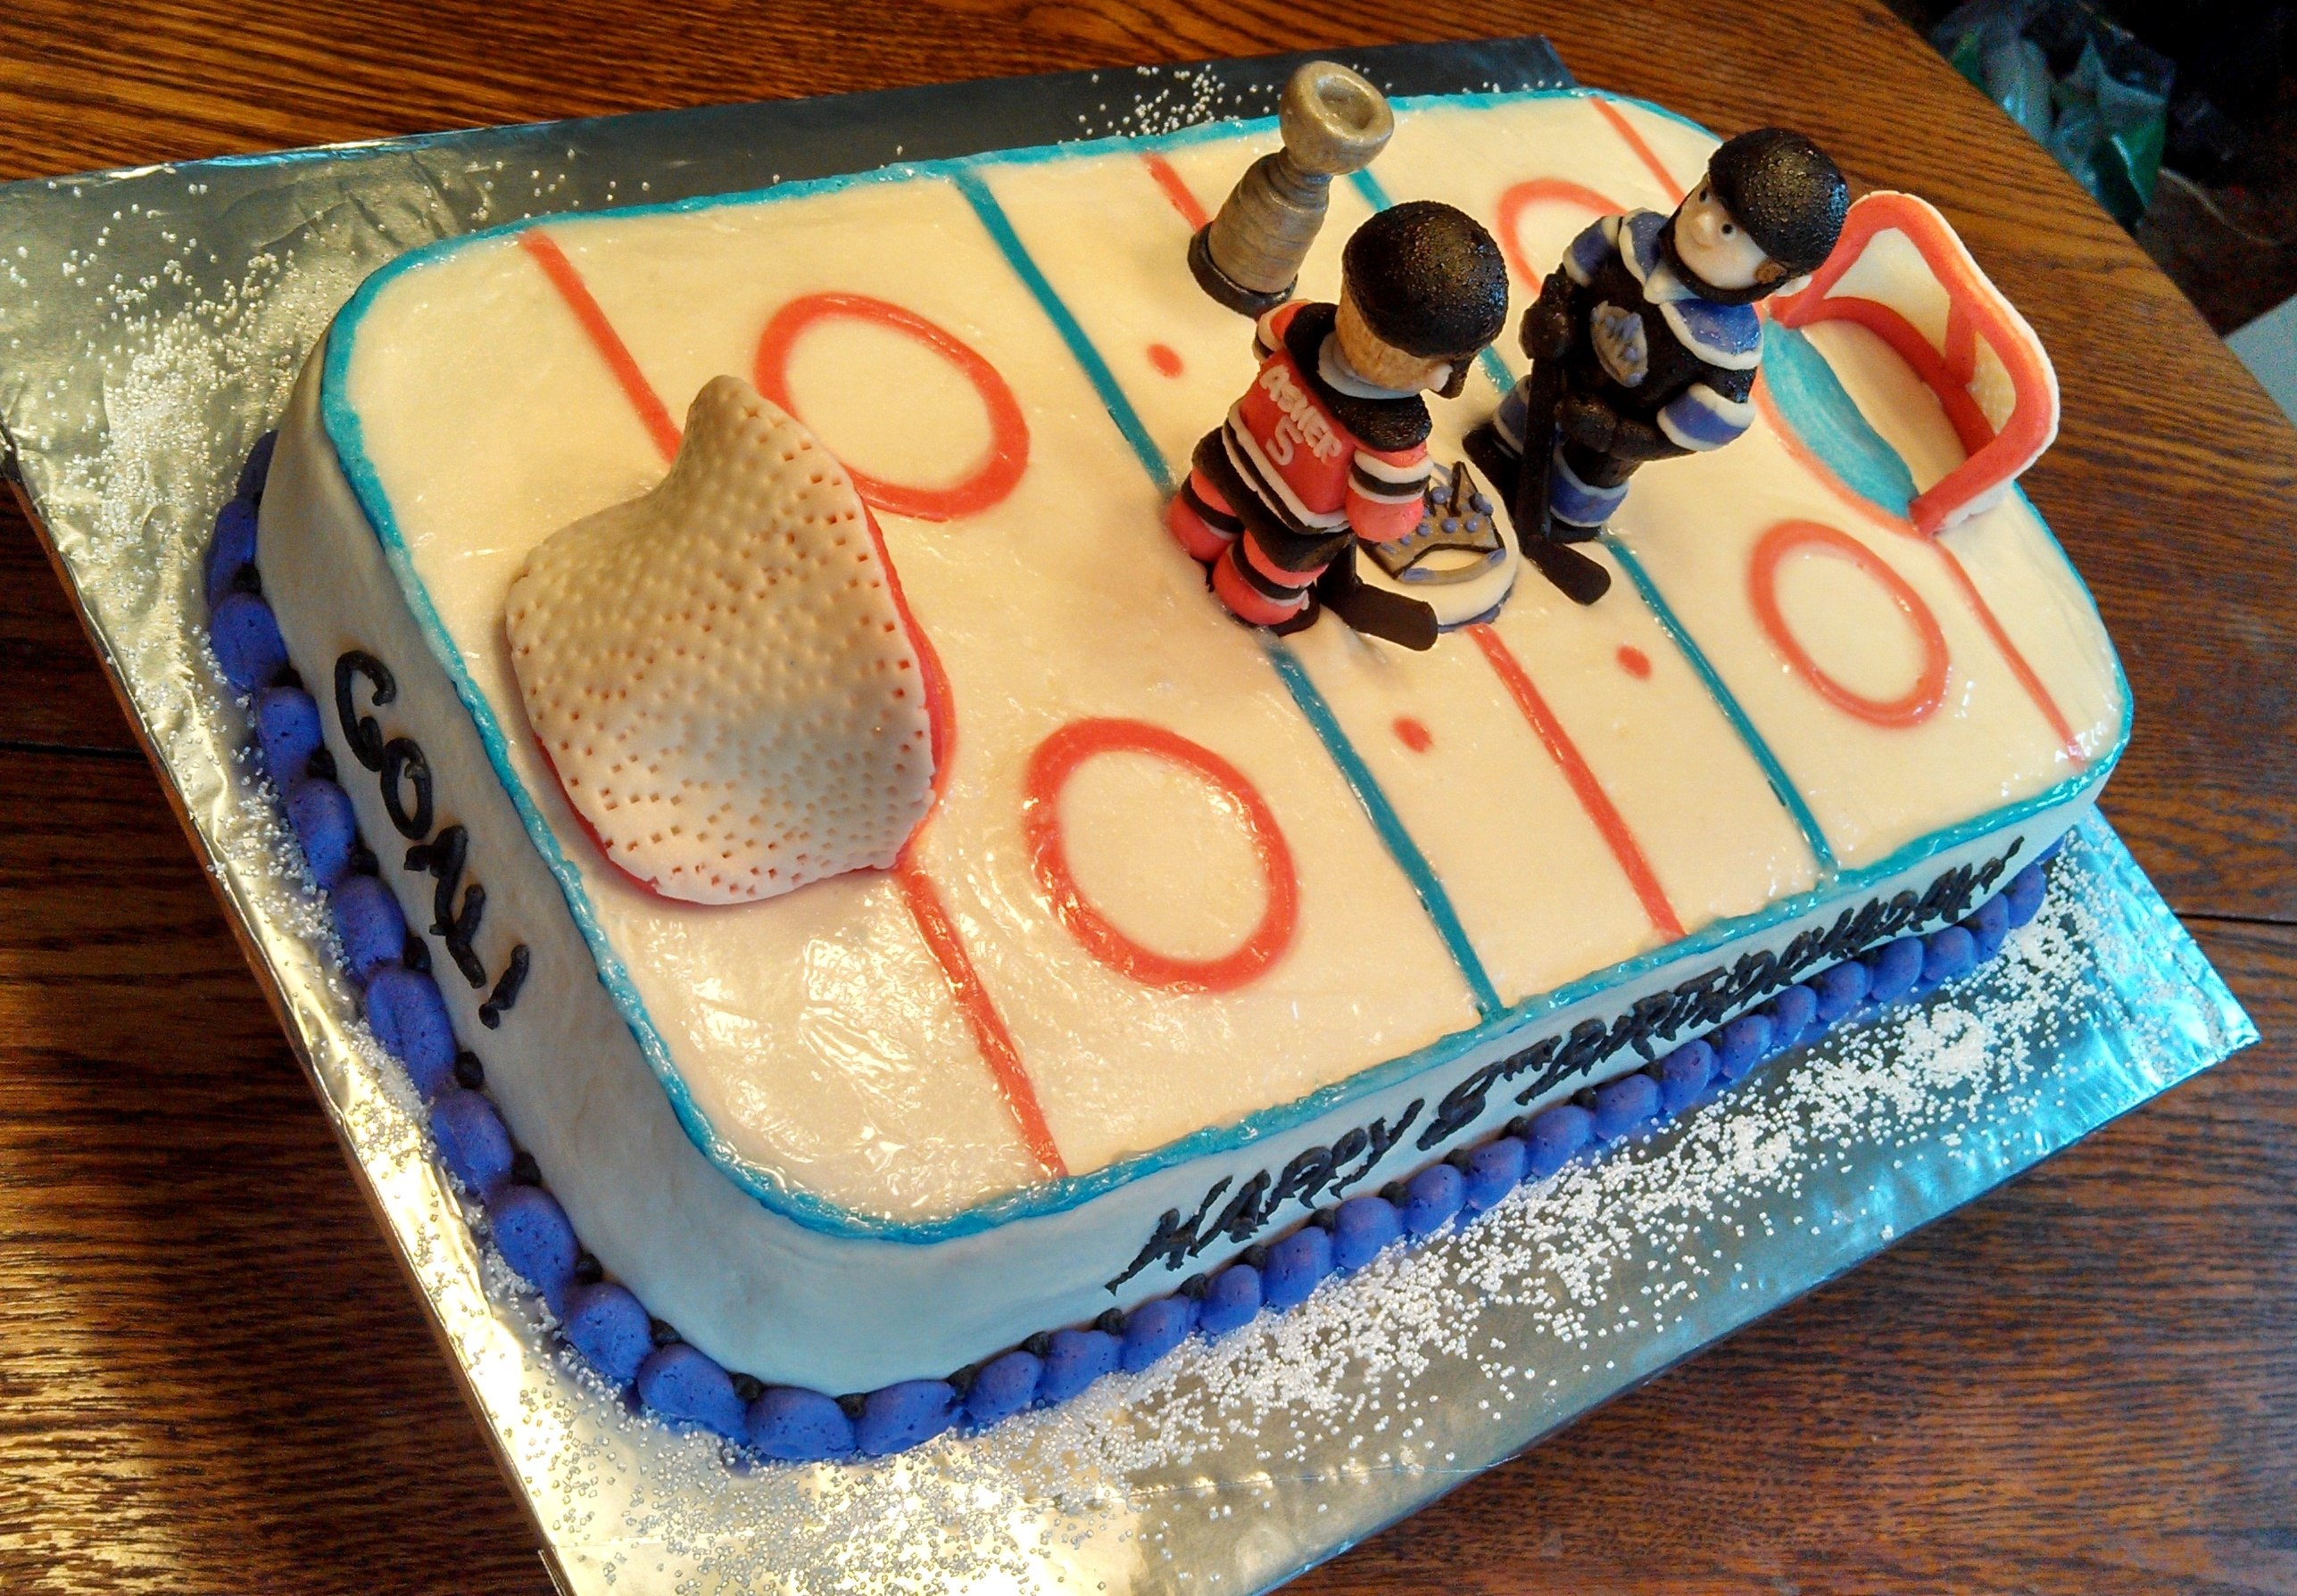 Hockey Rink Birthday Cake The Los Angeles Kings Vs New Jersey Devils Complete With Stanley Cup Players Are Boy Aidan And His